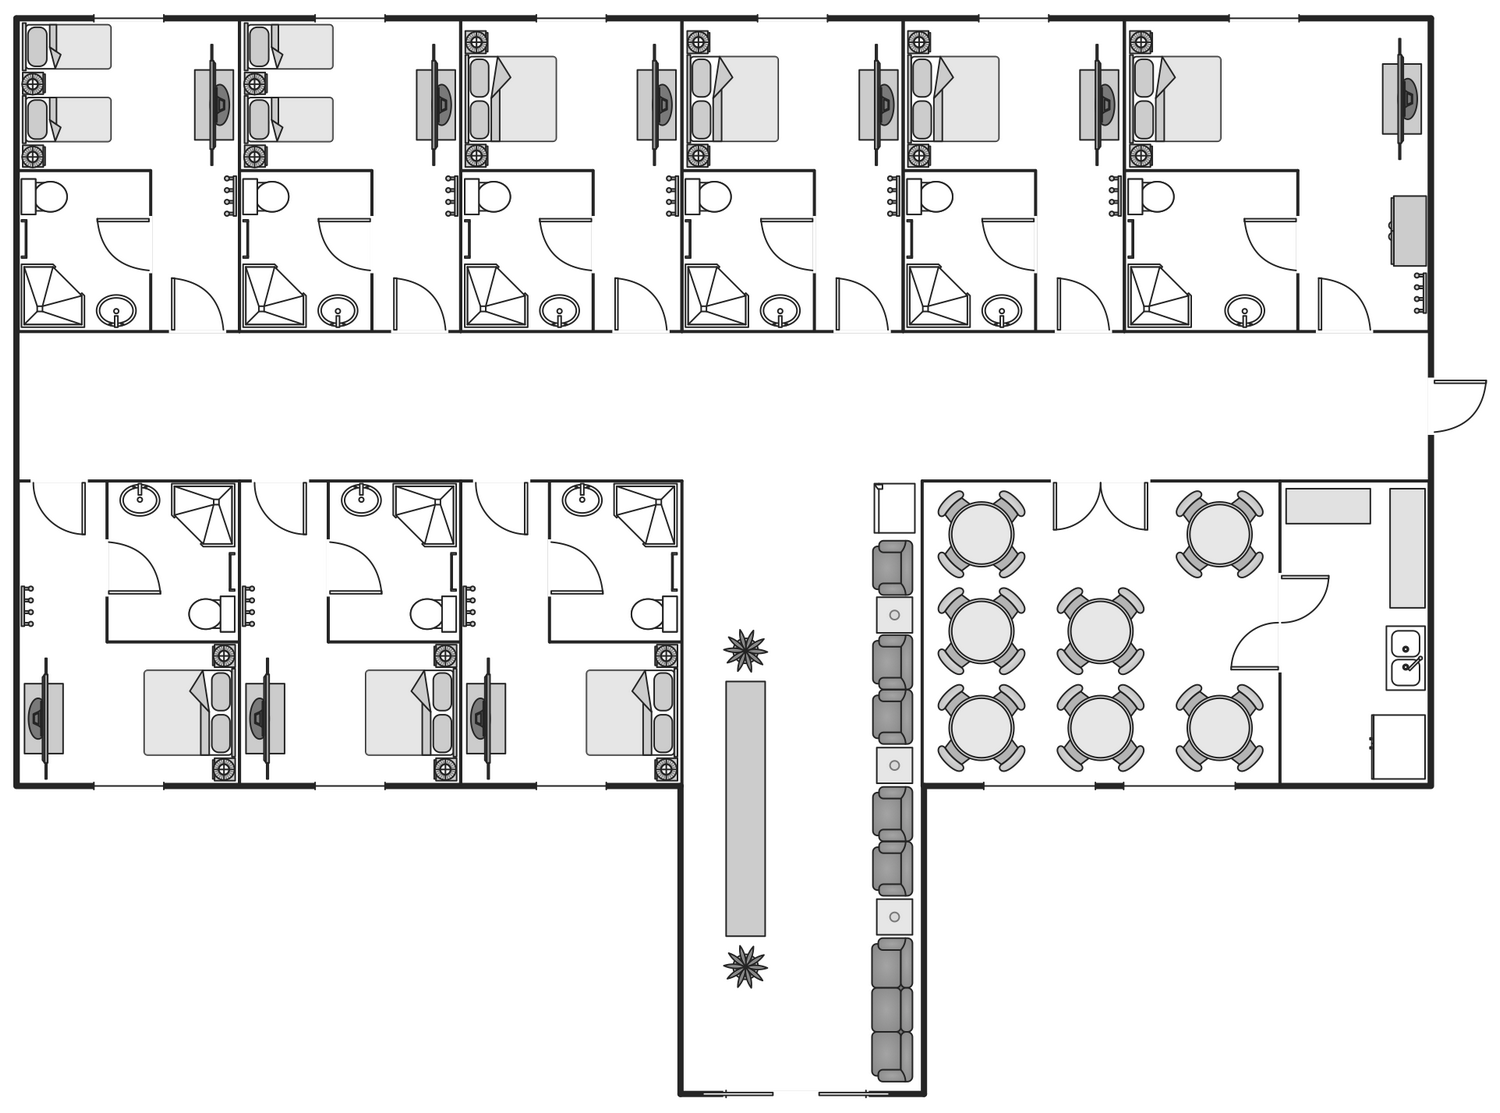 Basic Floor Plan - Mini Hotel Floor Plan